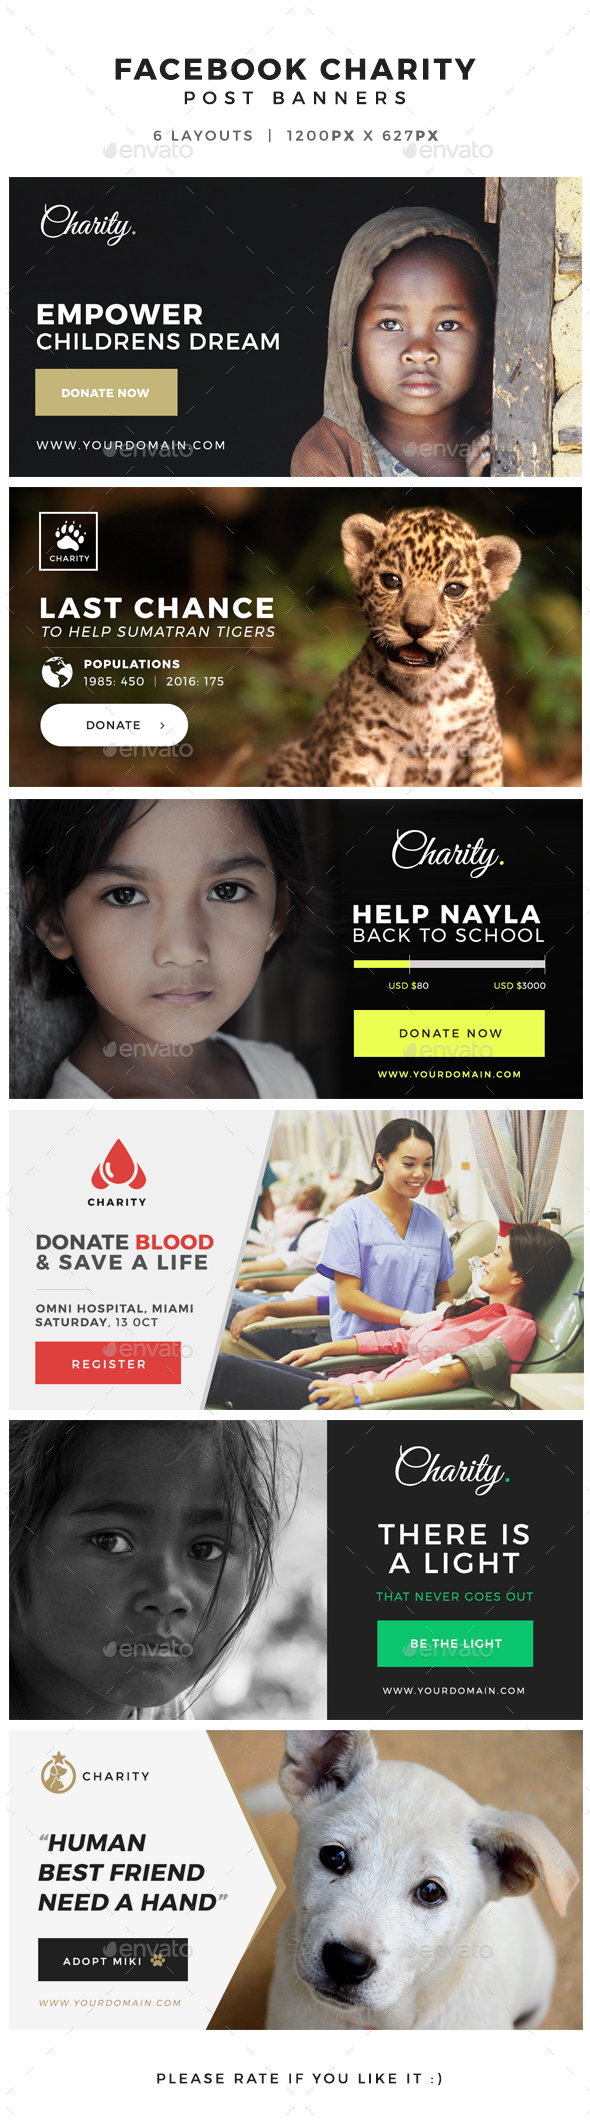 Facebook Charity Post Banners - Facebook Timeline Covers Social Media